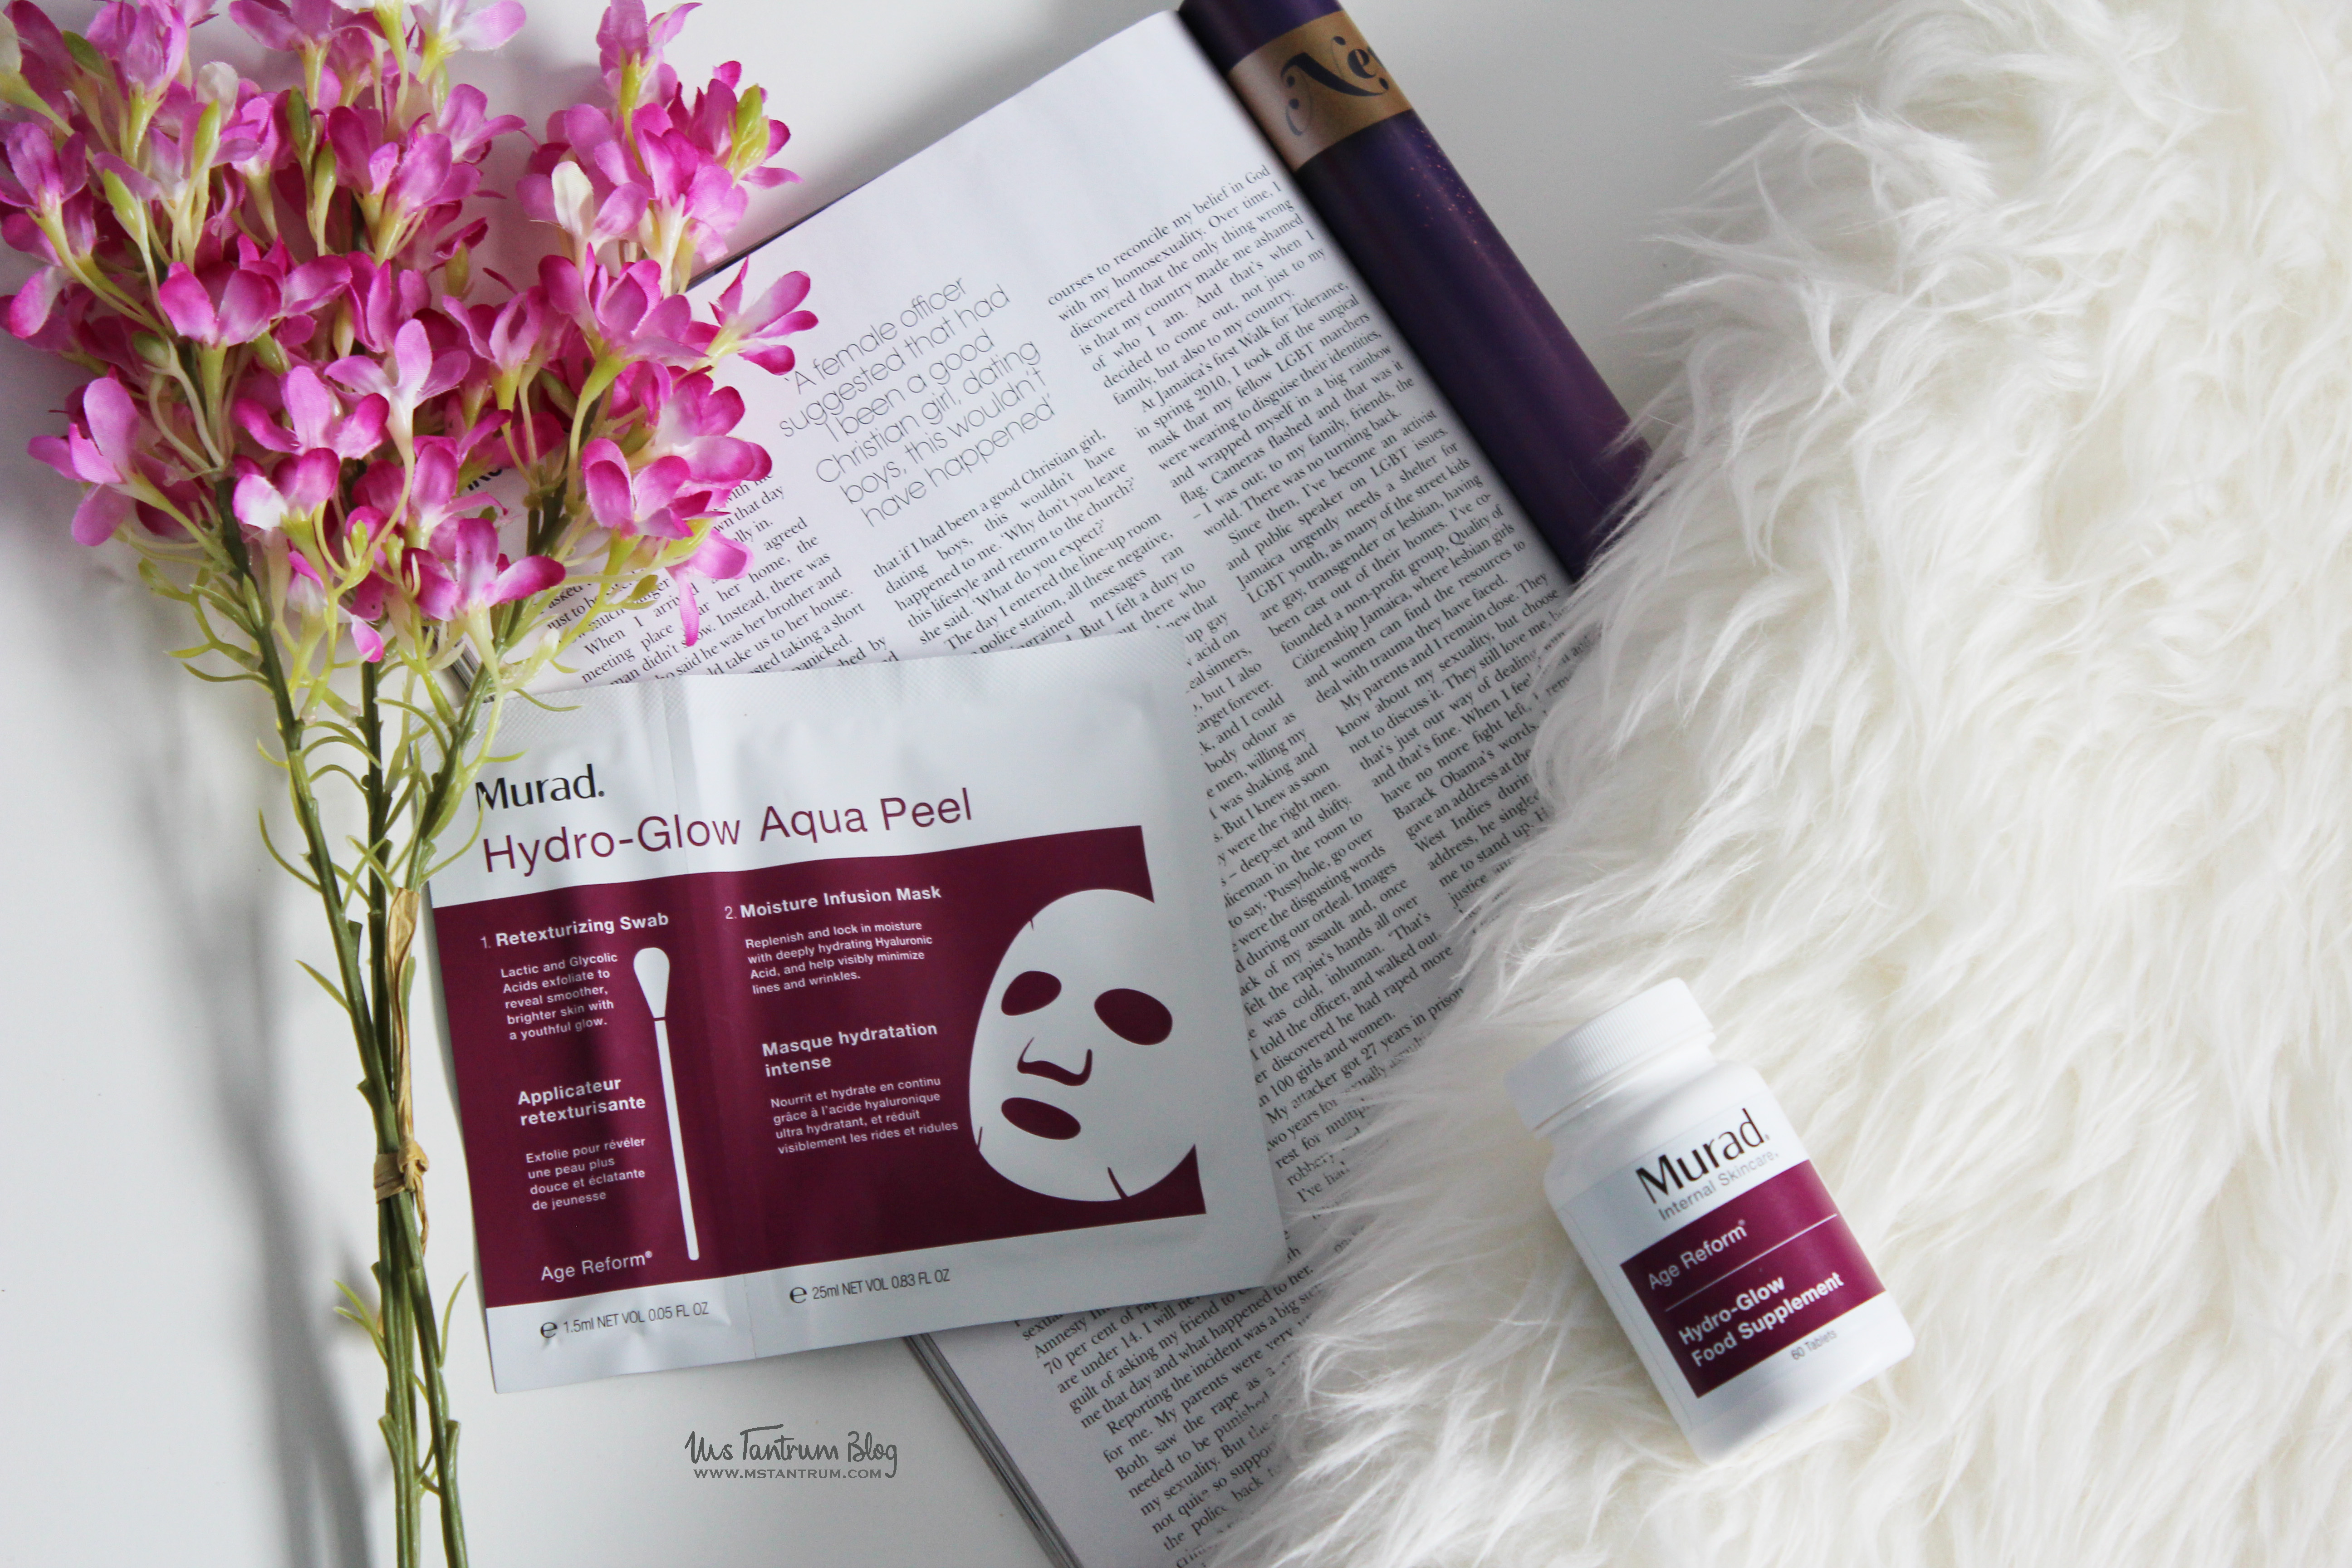 Murad Hydro Glow Range - Aqua Peel Mask & Dietary Supplements - Review on Ms Tantrum Blog